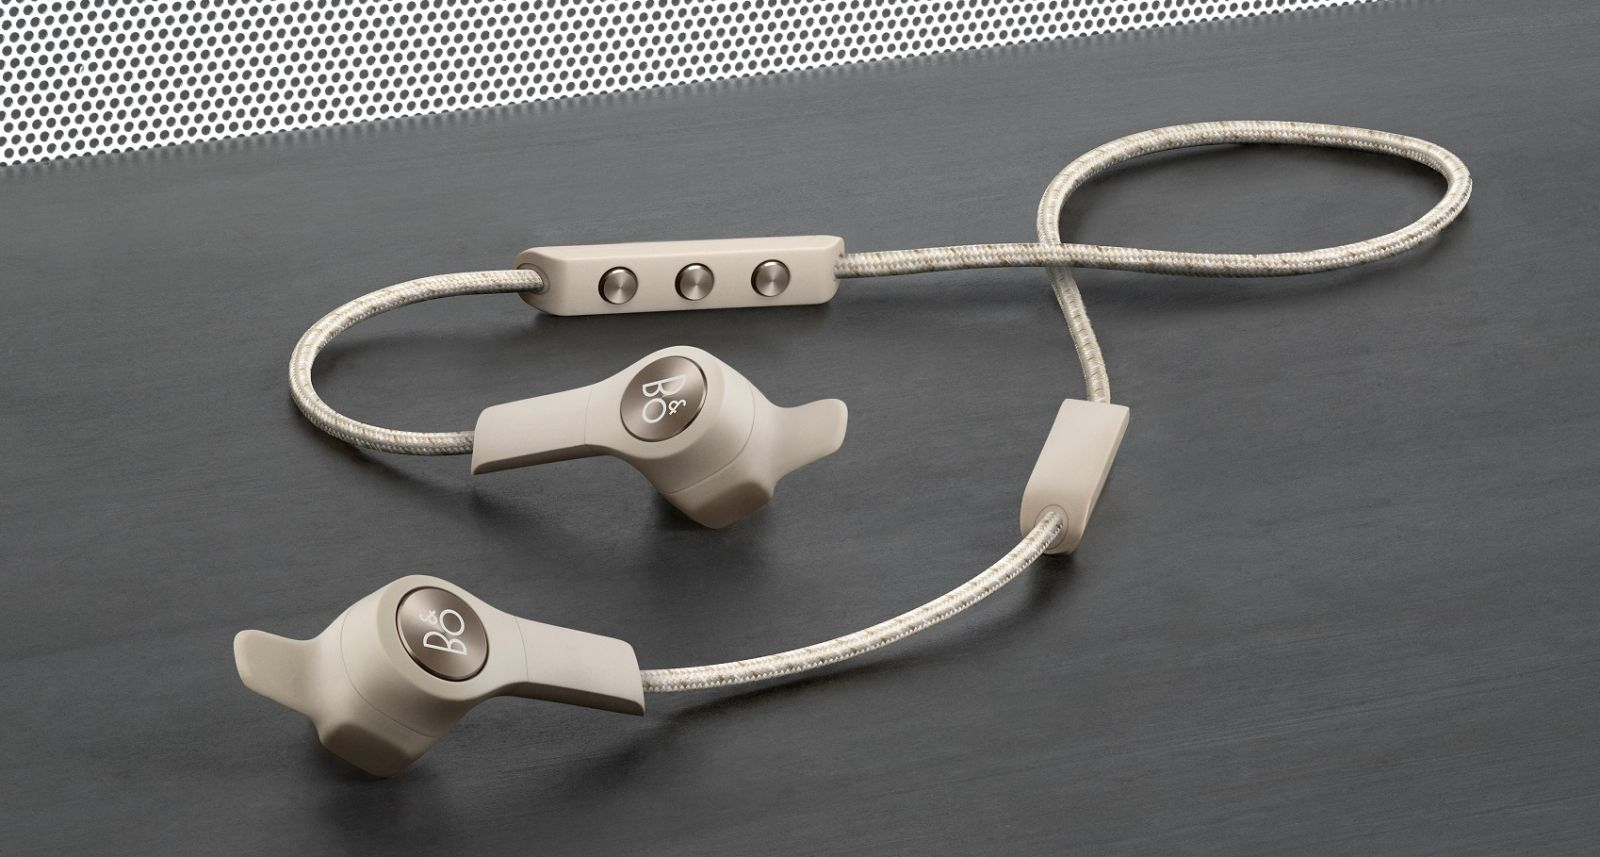 Bang & Olufsen Beoplay E6